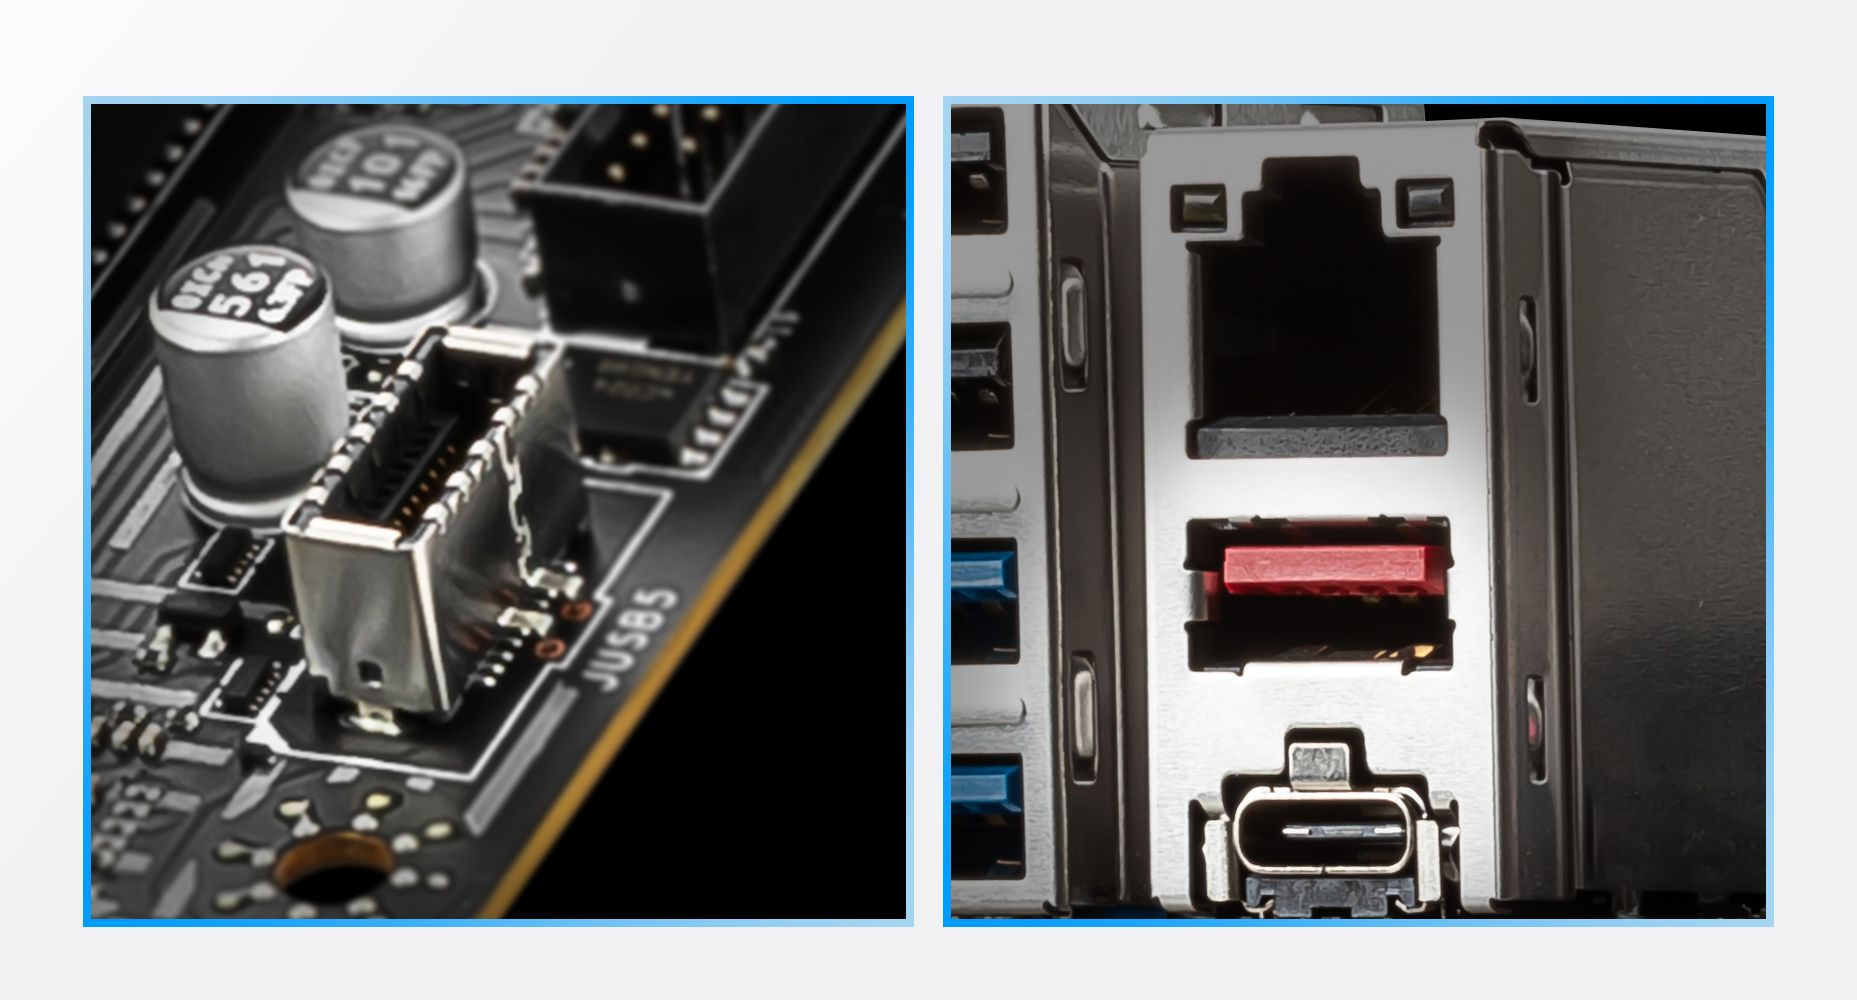 MSI Z590-A PRO USB Type-C ready in both Front case panel & Rear IO